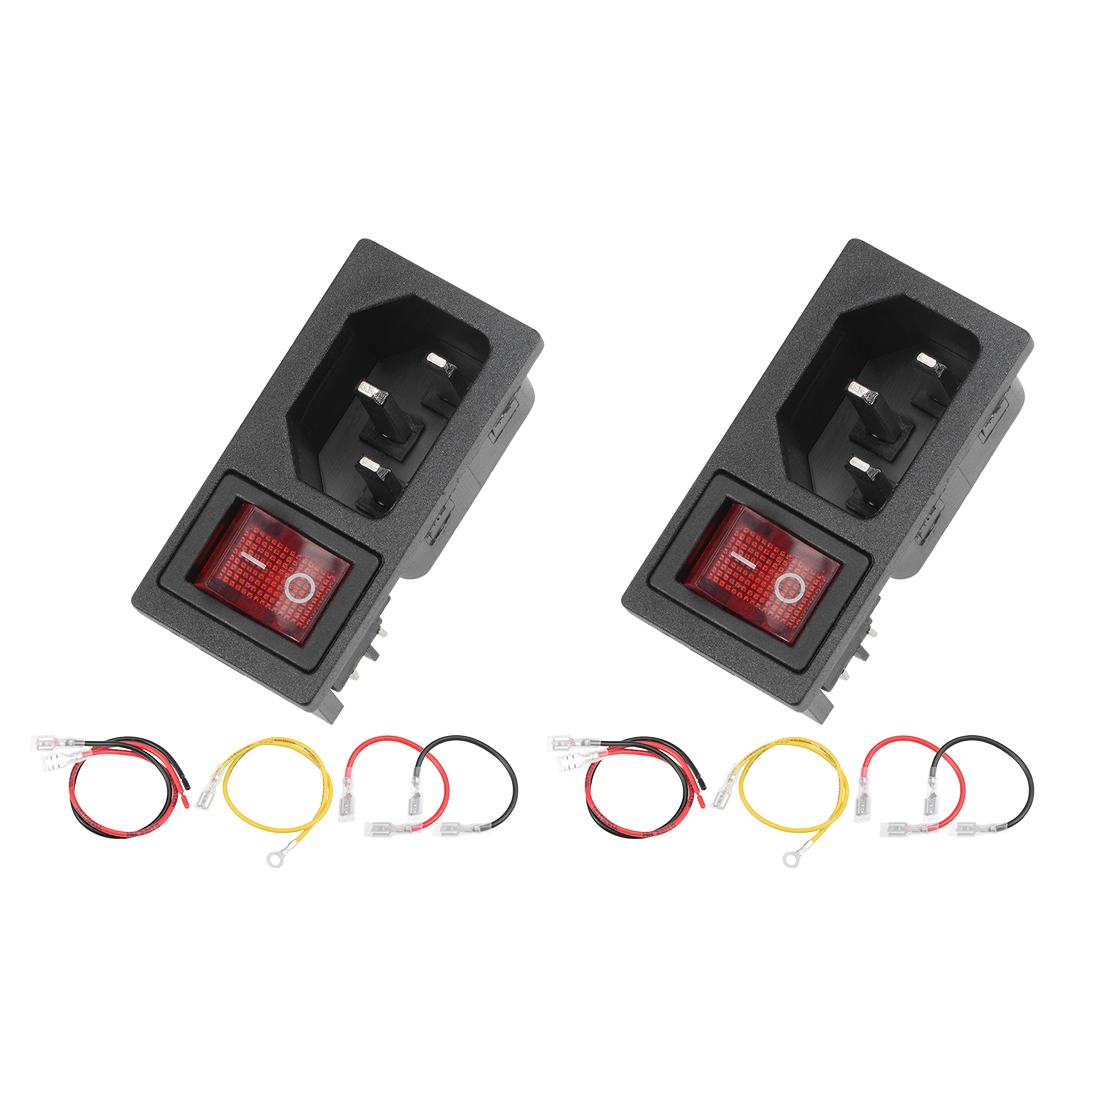 2Set 49x24x28mm Male Plug 4Pin 2Position Led Red Switch with 110 200 260mm Wire